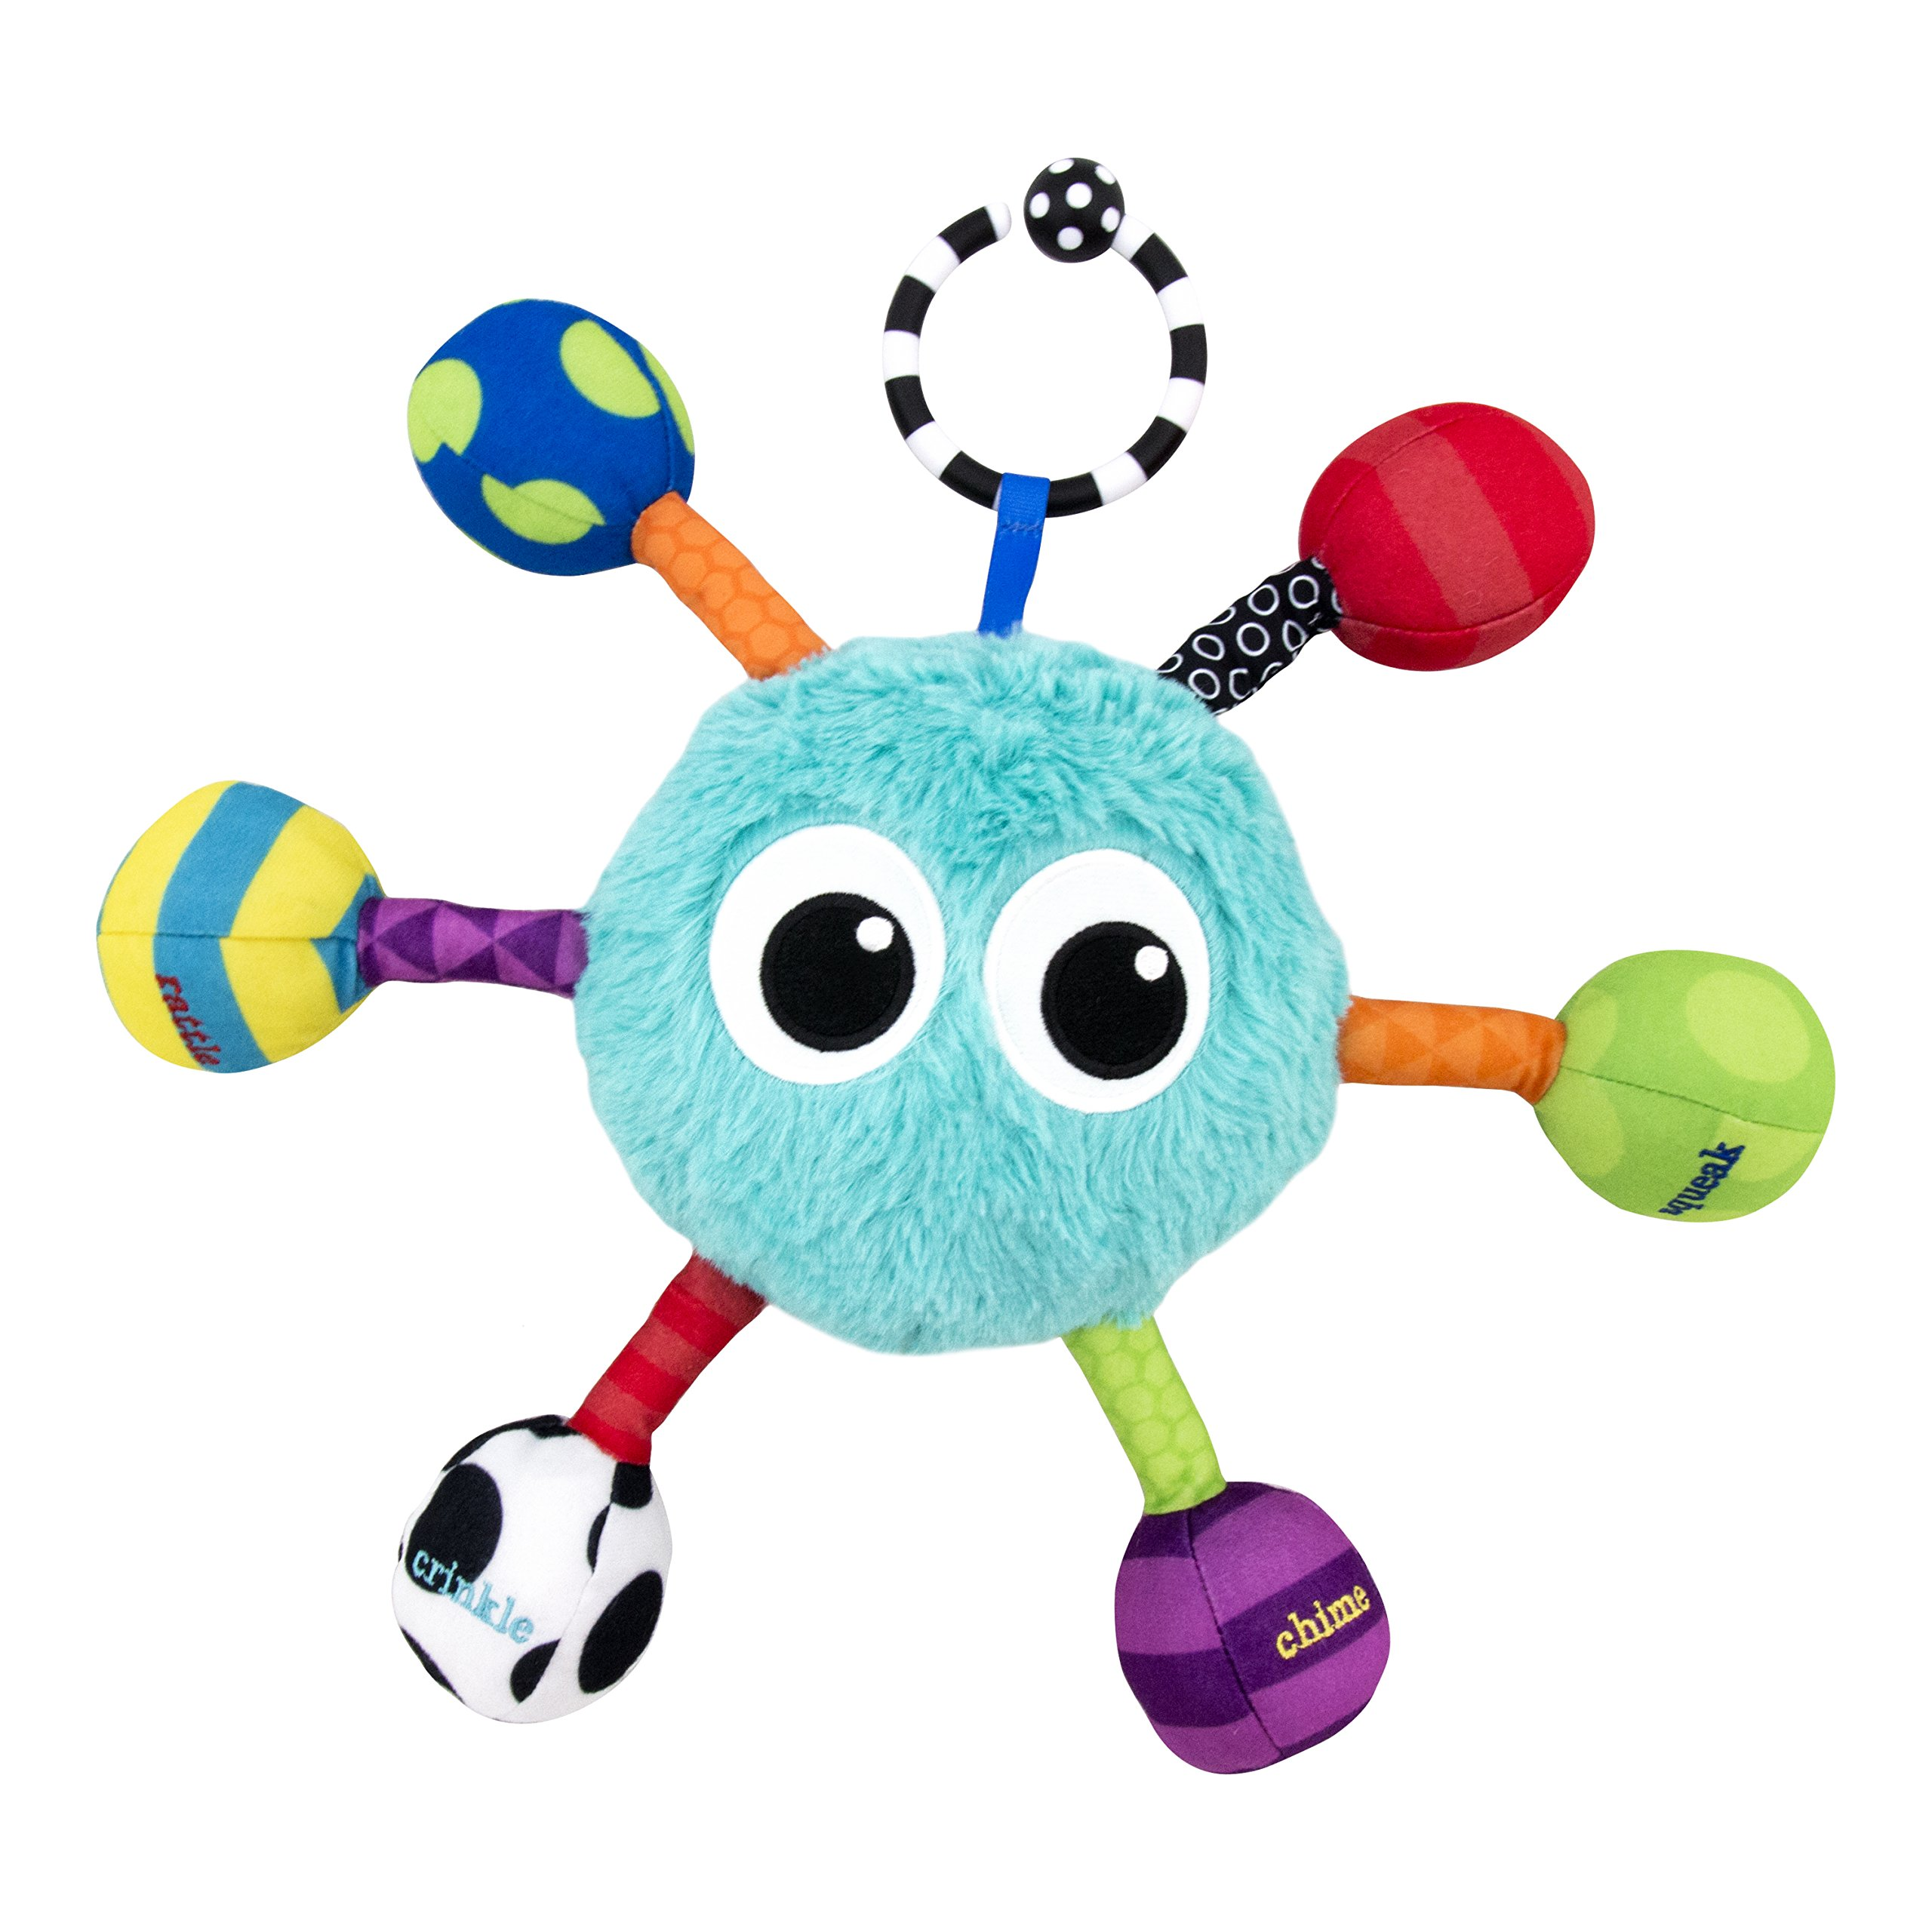 Sassy Grasp and Giggle Guy Toy